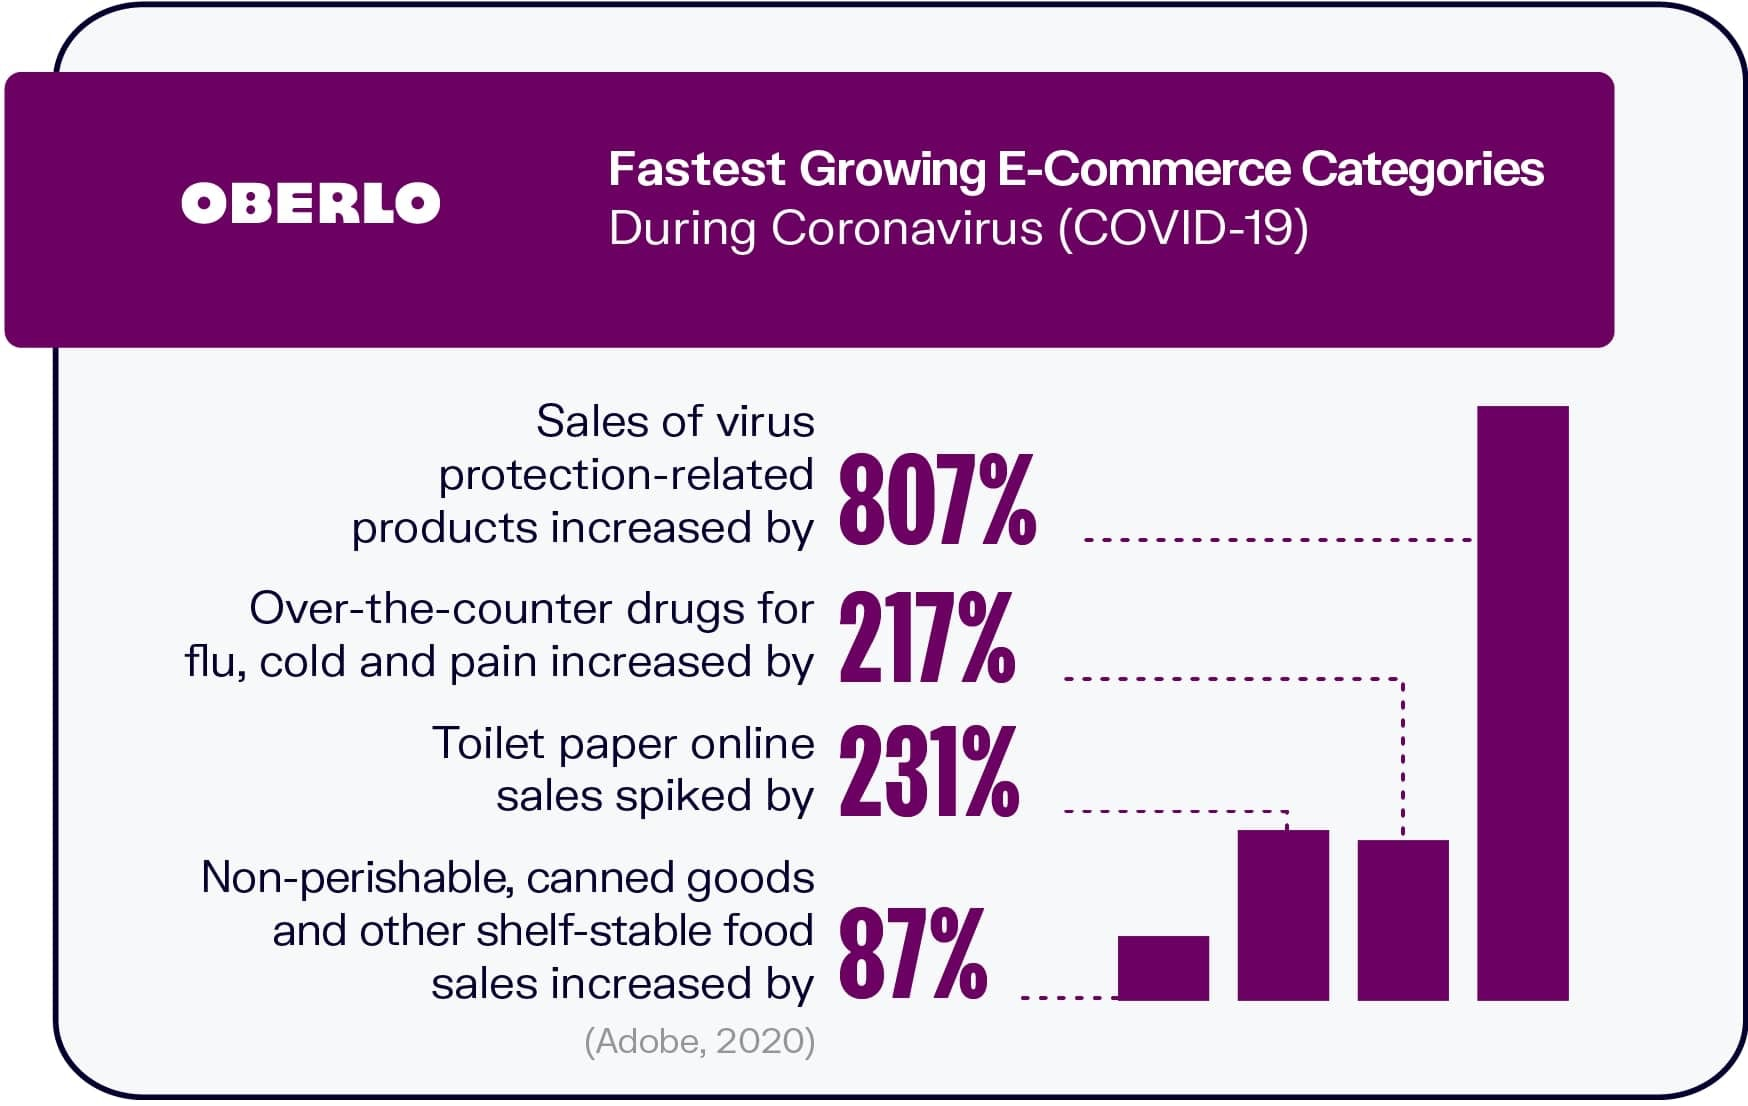 Fastest Growing Ecommerce Categories During Coronavirus (COVID-19)